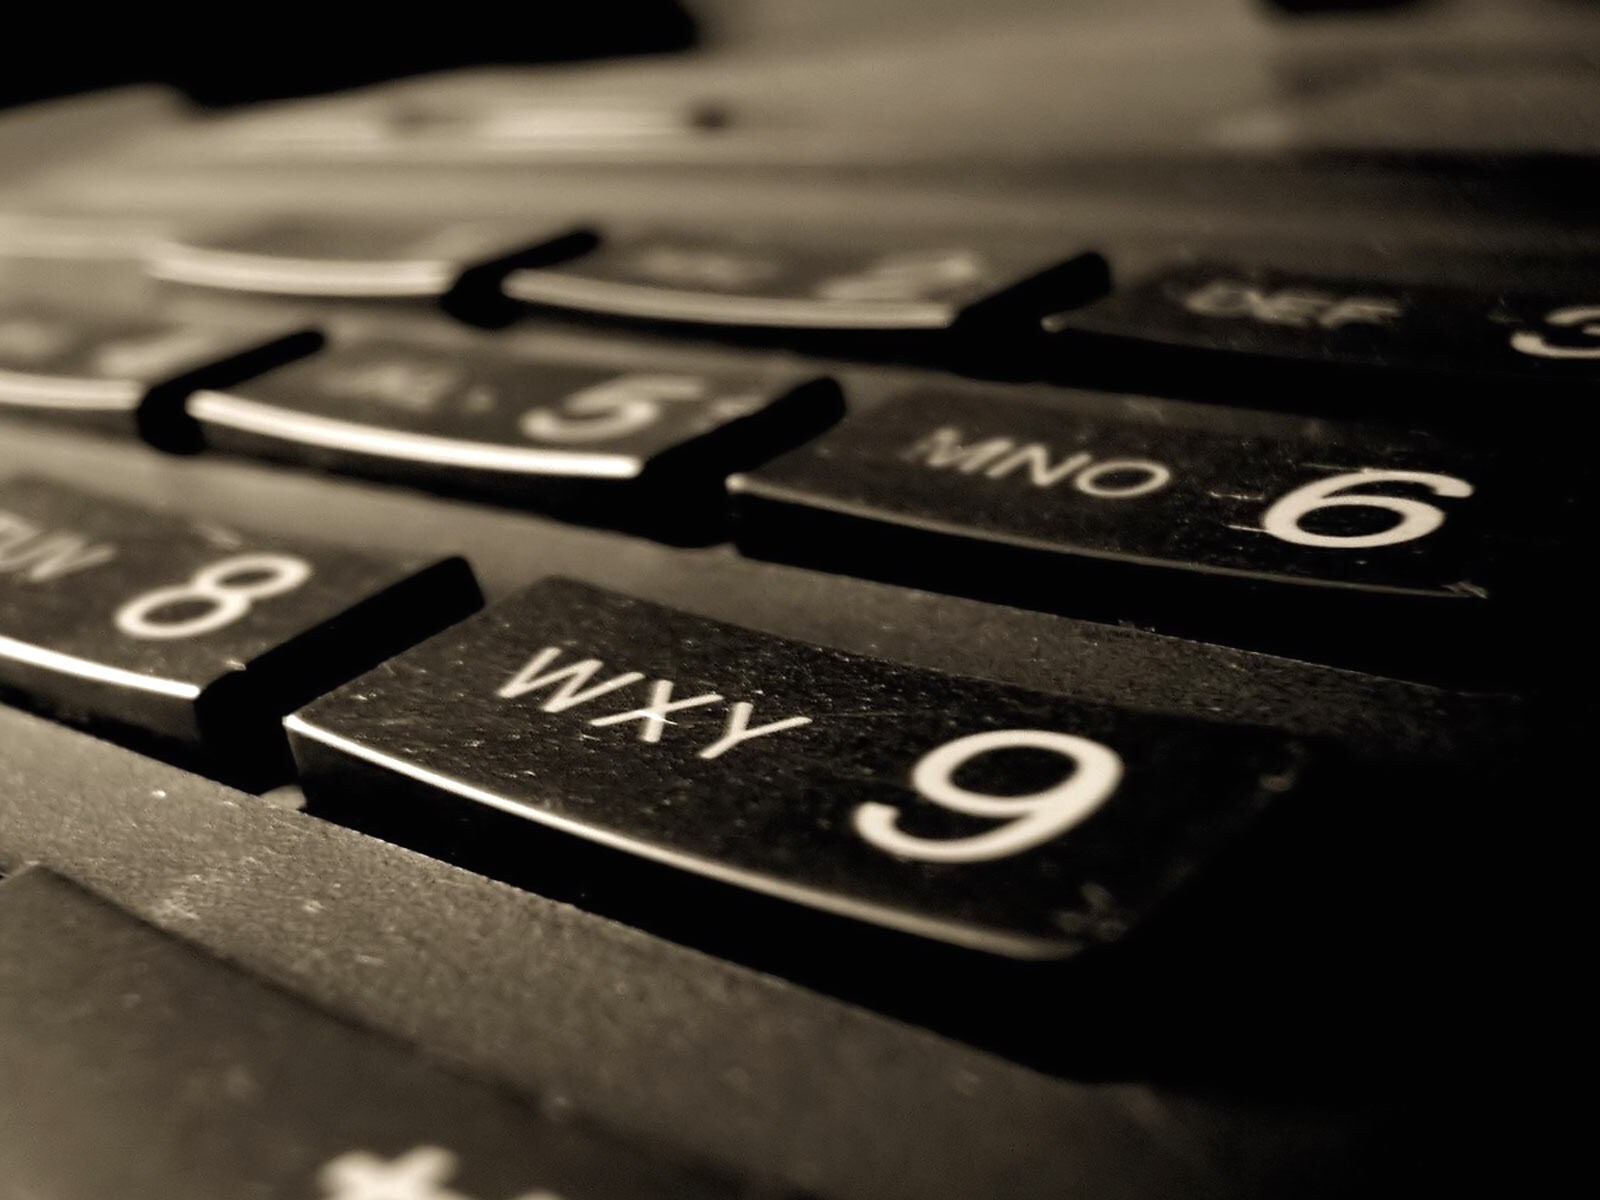 laptop keypad close up pic | hd wallpapers